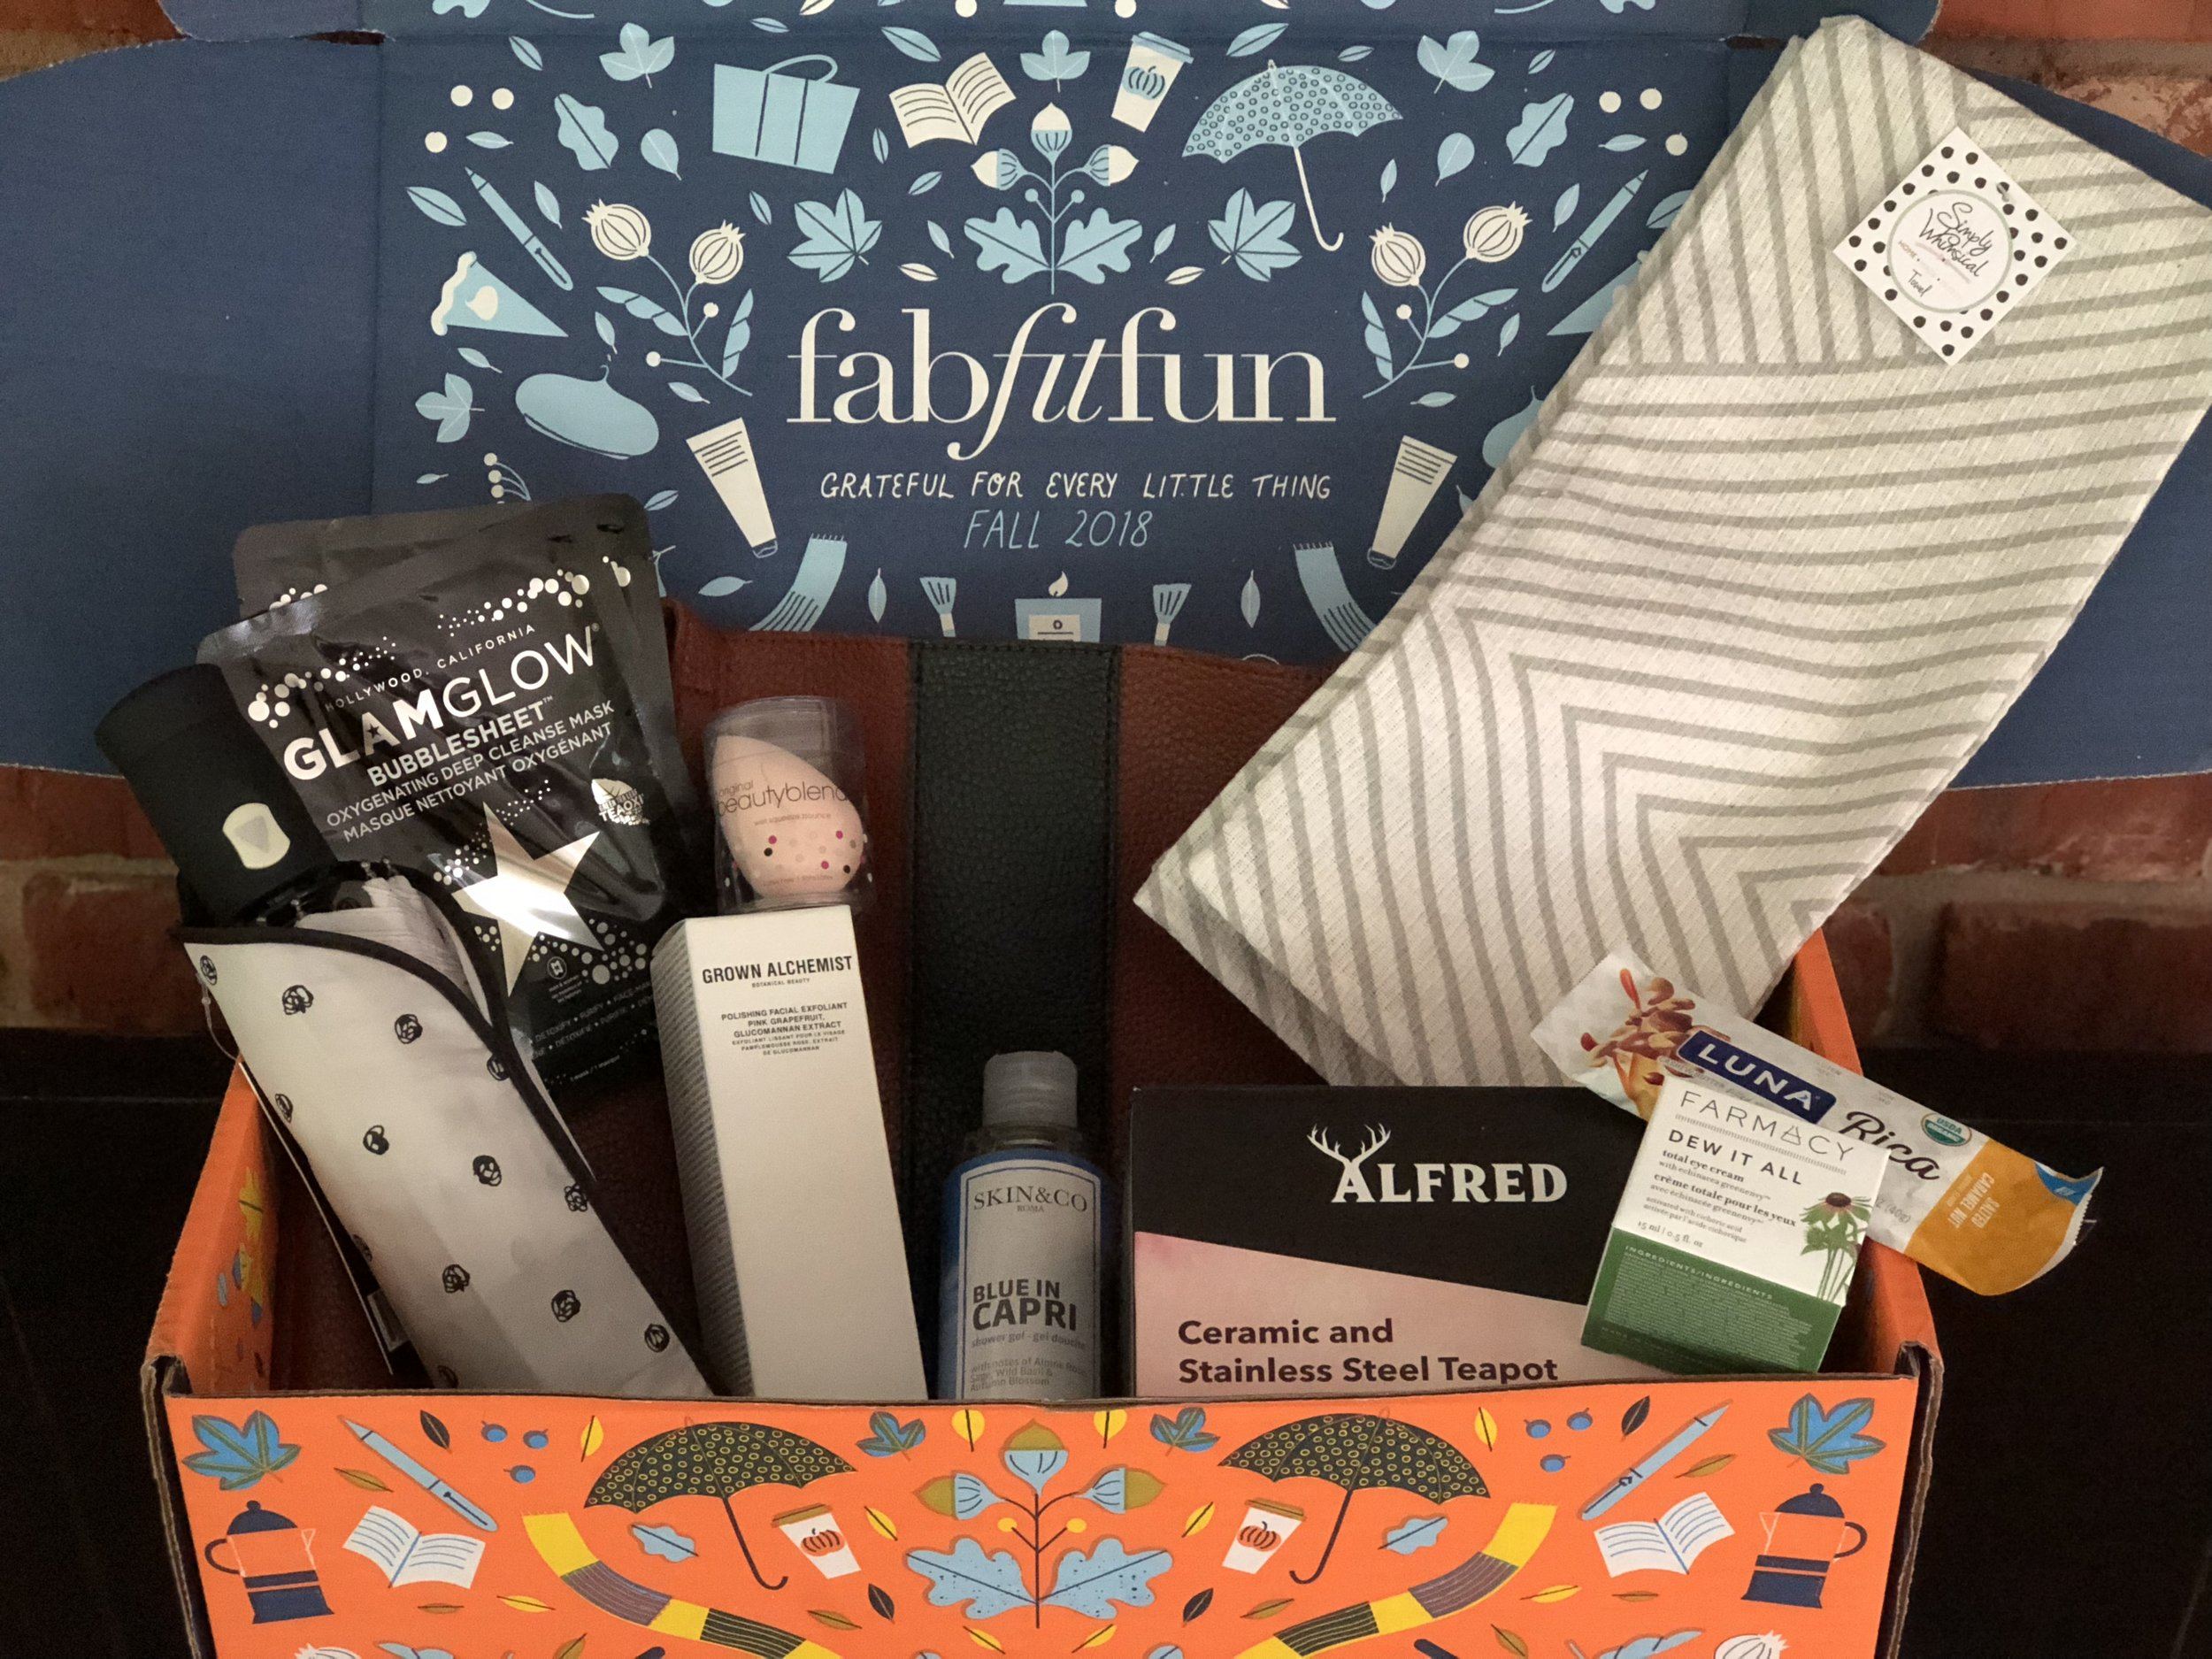 mY fABFITFUN BOX---  vINCE CAMUTO LUCK TOTE IN RED DESERT $128, beAUTY BLENDER $20, gLAMGLOW bUBBLE sHEET dEEP cLEANSE MASK 2 PACK- $18, sIMPLY WHIMSICAL TEA TOWELS $15, skIN&CO rOMA BLUE SHOWER GEL $22, cATHERINE MALADRINO UMBRELLA $40, ALFRED TEAPOT $26, gROWN aLCHEMIST POLISHING FACIAL EXFOLIANT $67, FARMACY DEW IT ALL TOTAL EYE CREAM $38.  tHIS ALL TOTALS TO $374! tHE SEASONAL BOXes are $50 . CHECK OUT  MY SUBSCRIPTION ADDICTION BLOG  TO SEE OTHER BOXES I GET.